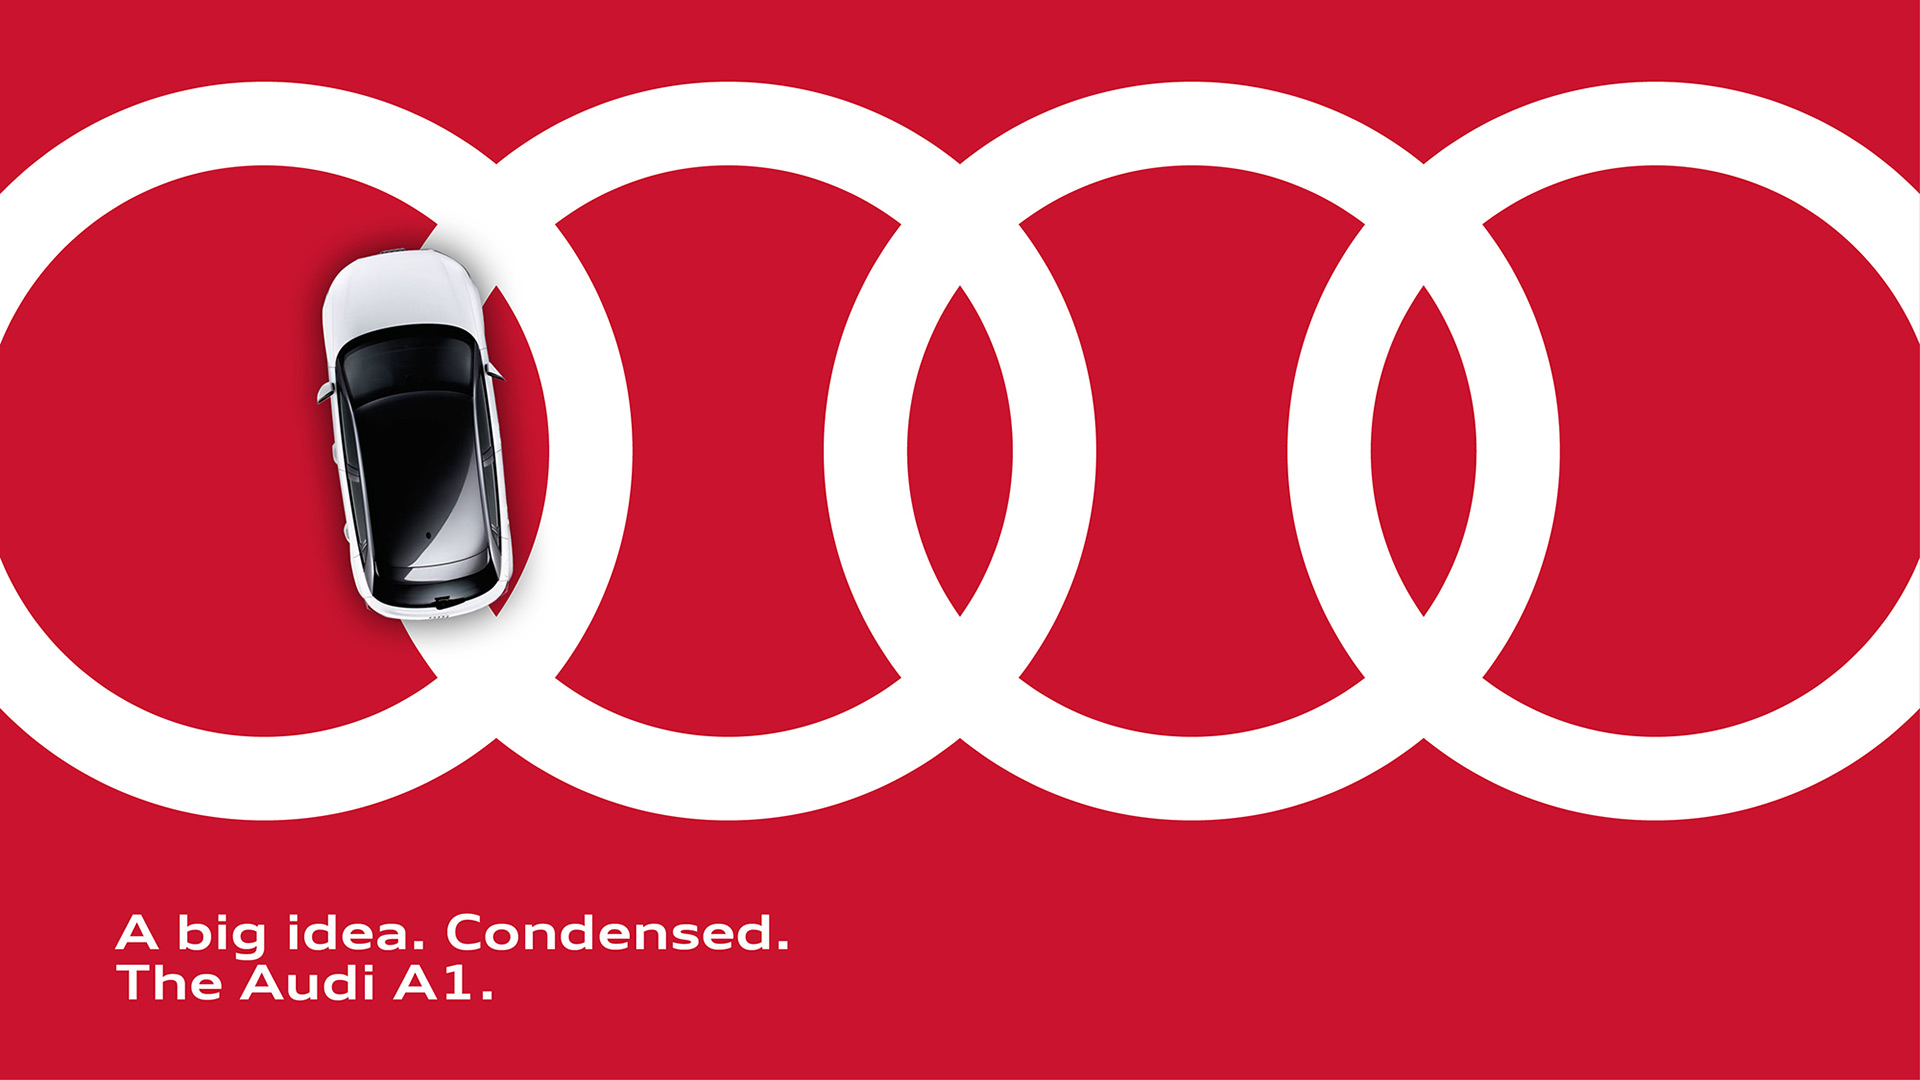 Advertising for the Audi A1. You look from above and see the car driving on the rings. Next to it stands: A big idea. Condensed. The Audi A1.